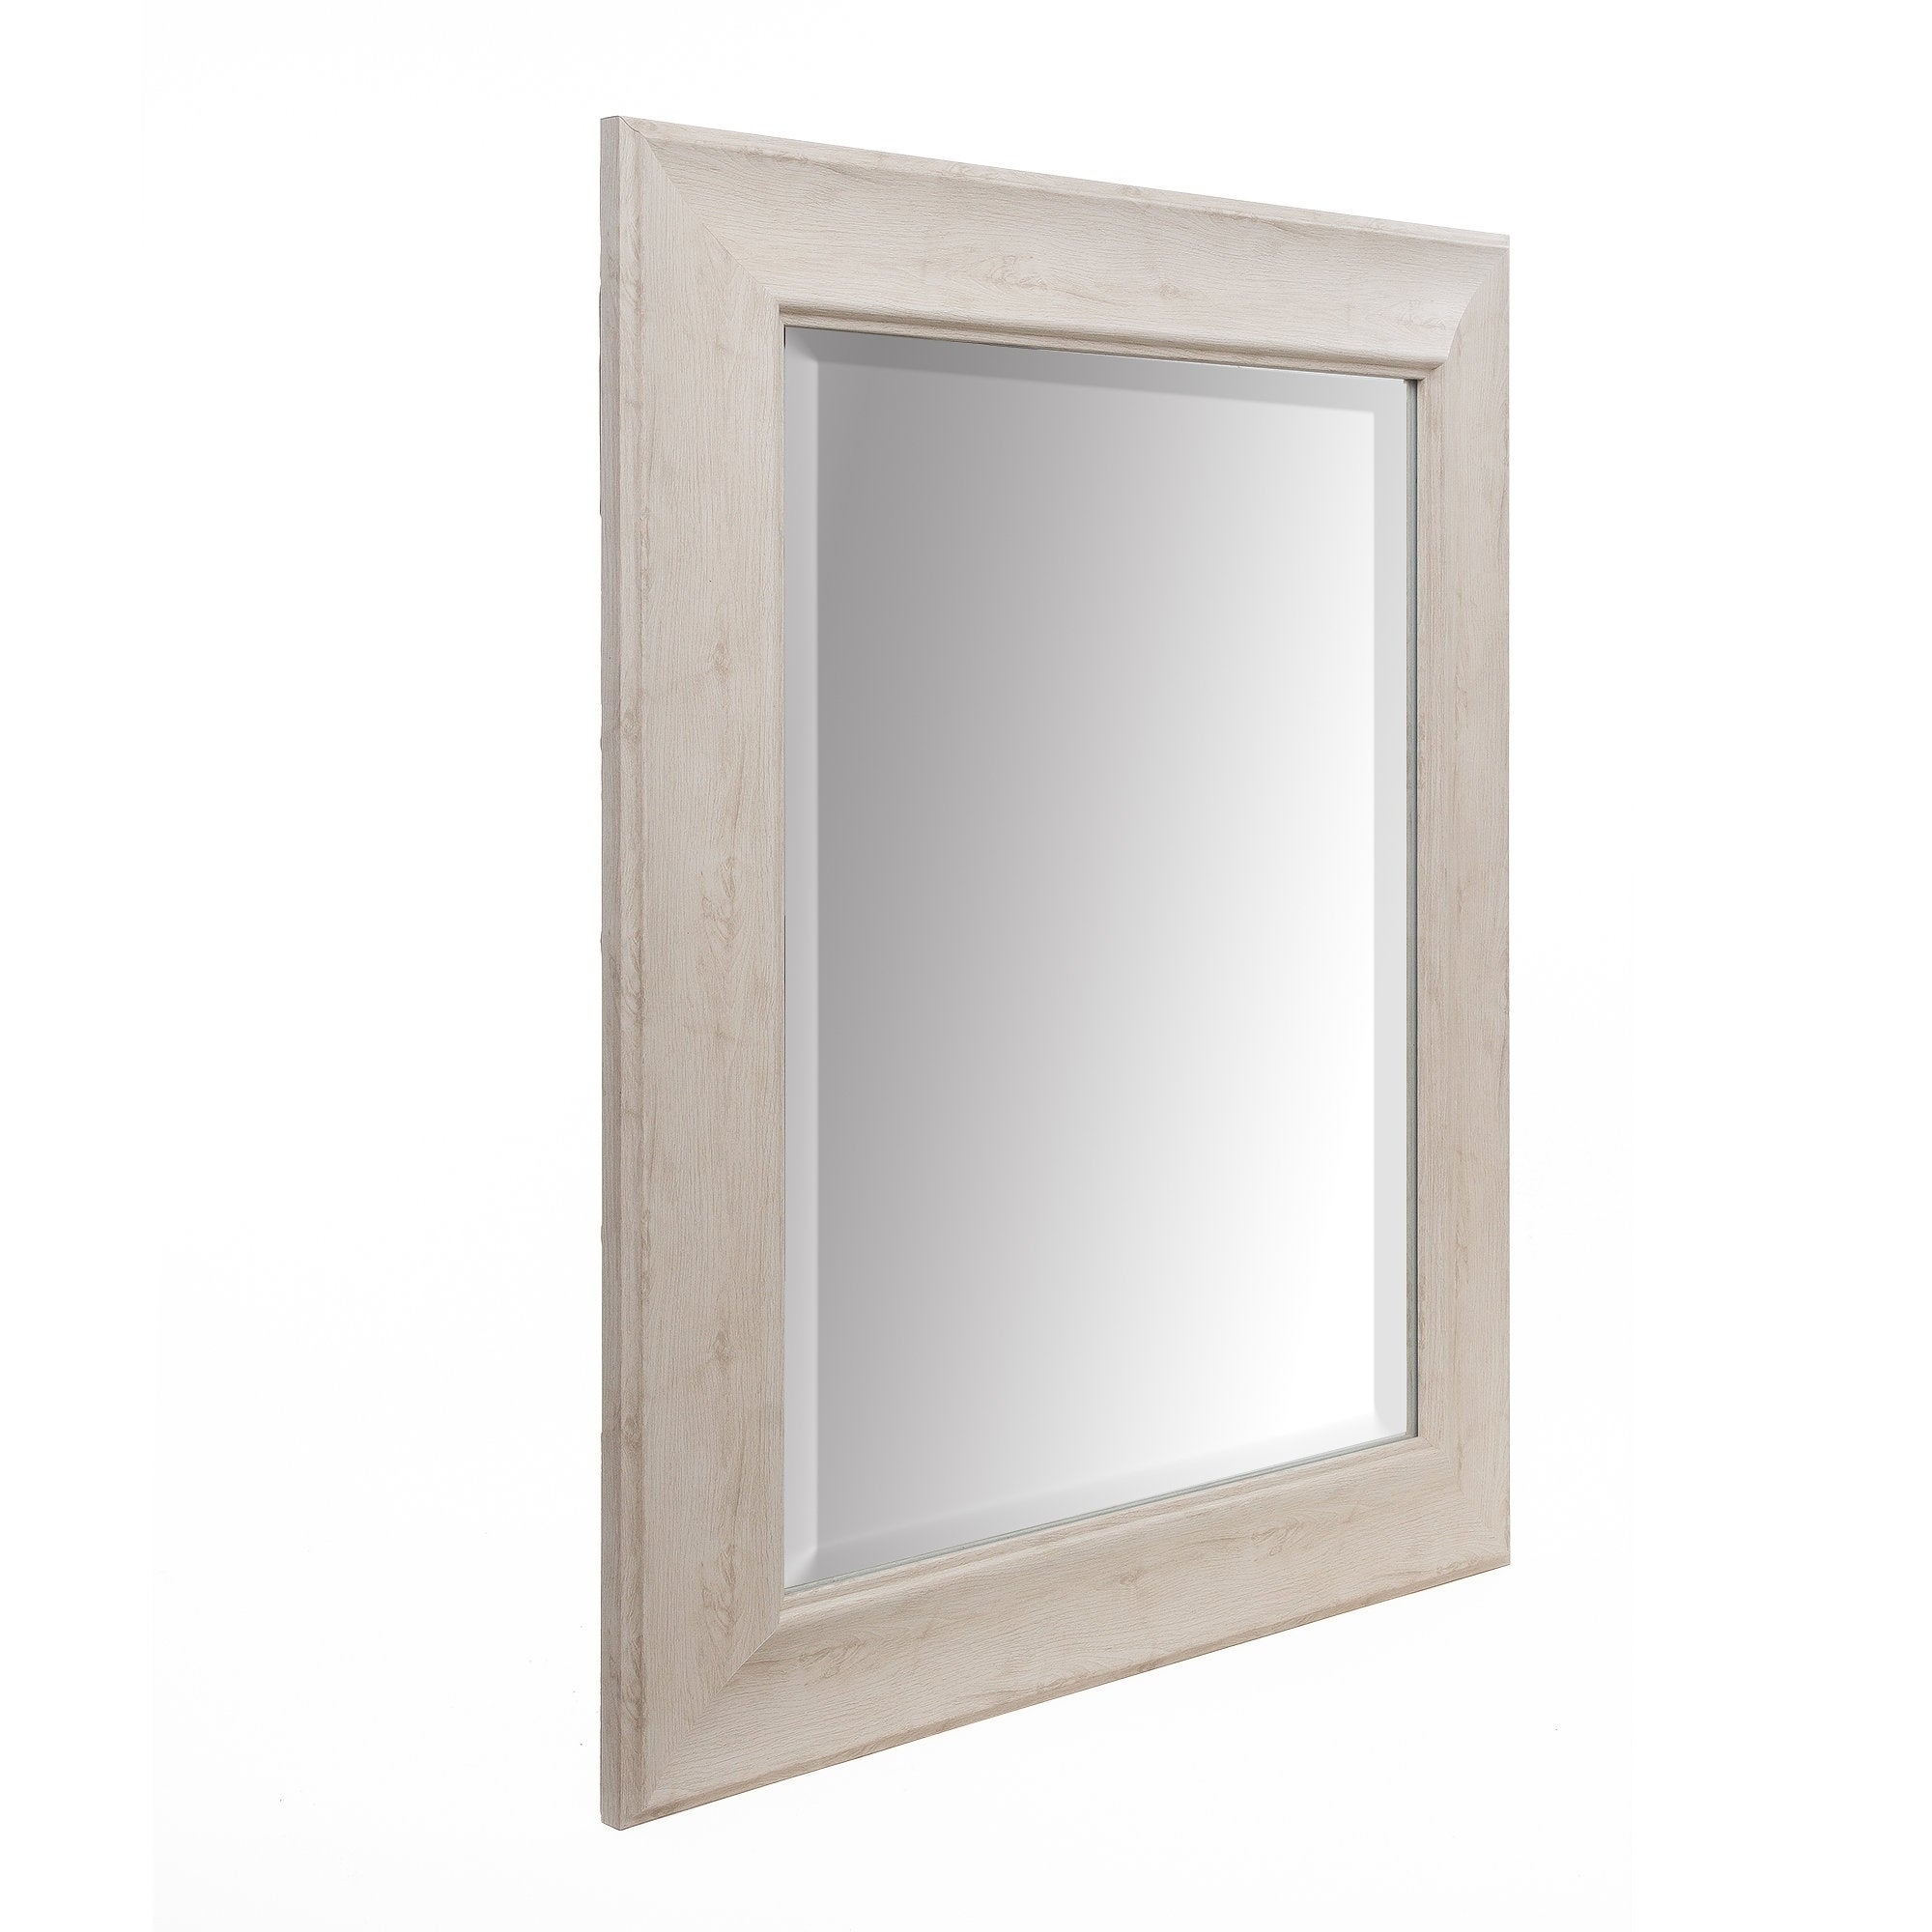 16X20 Traditional Beveled Wall Mirror For Traditional Square Glass Wall Mirrors (Gallery 18 of 30)